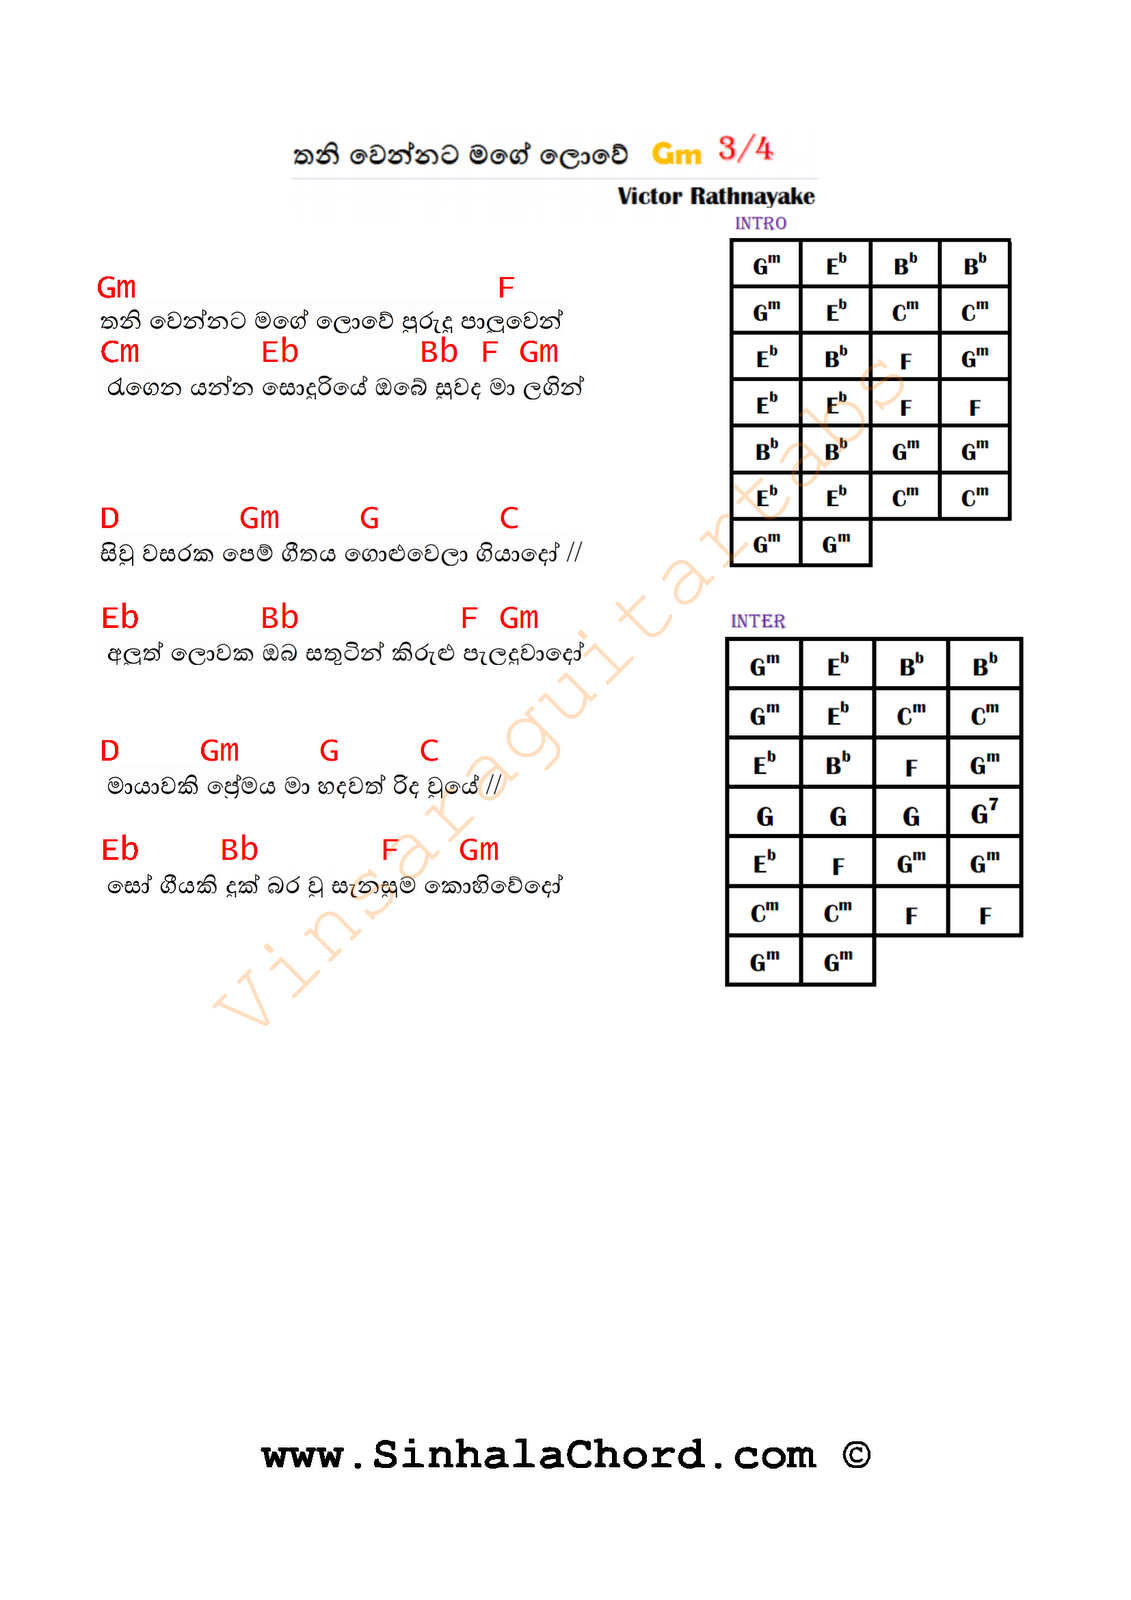 Thaniwennata Mage Lowe Guitar Chords Sinhala Guitar Chordssinhala